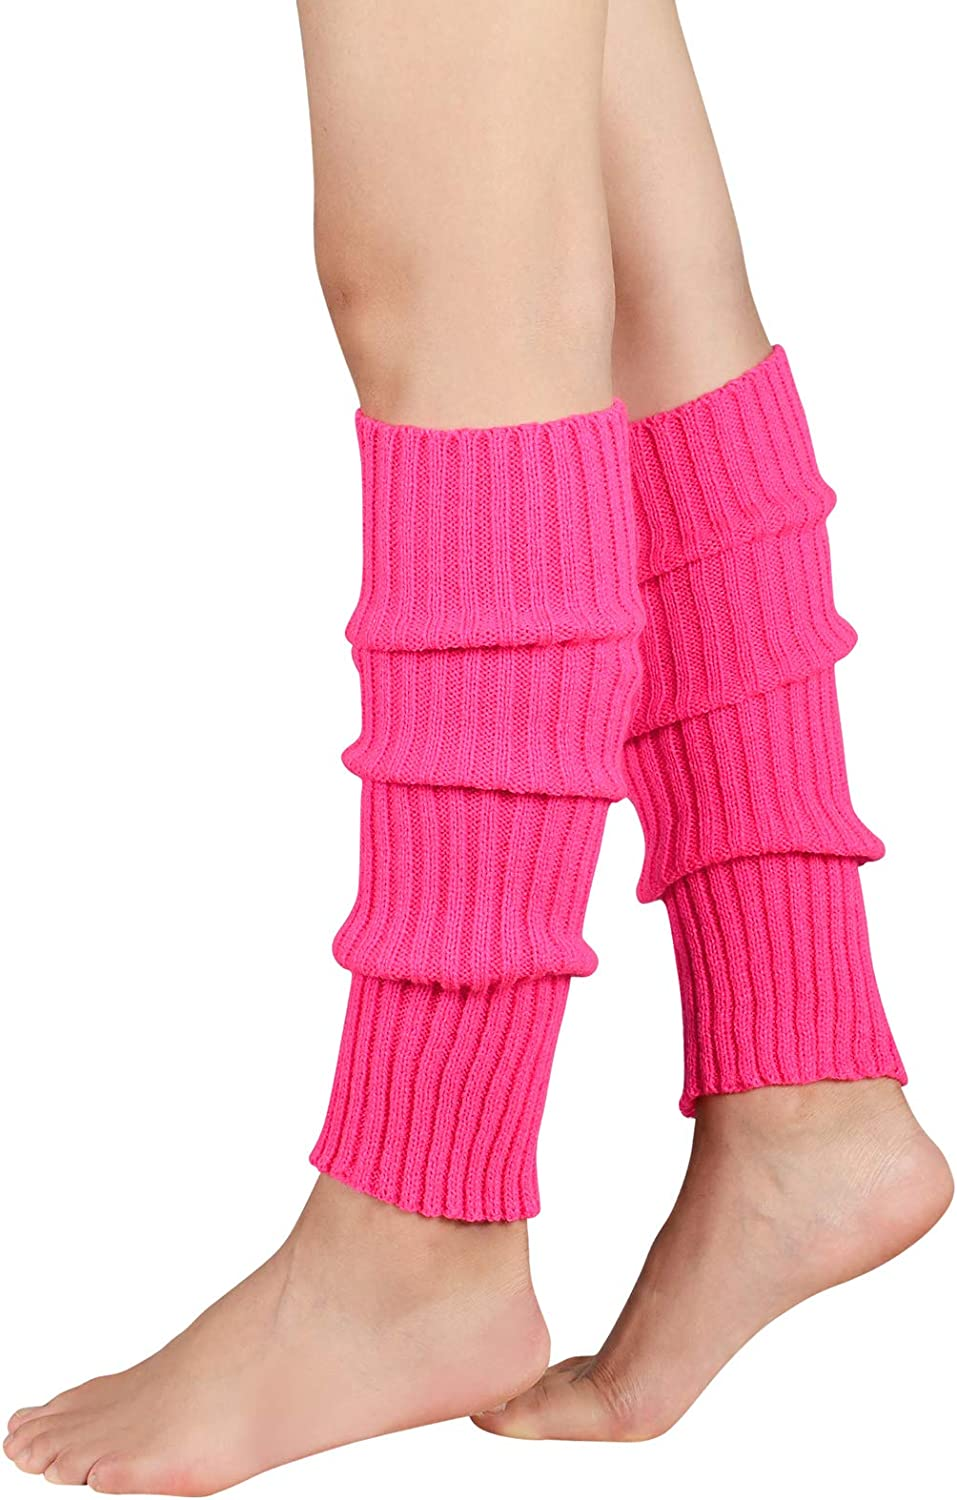 Durio Women's Fashion Leg Warmers 80s Ribbed Knit Leg Warmers Knee High Socks Warm Leg Warmer for Party Sports